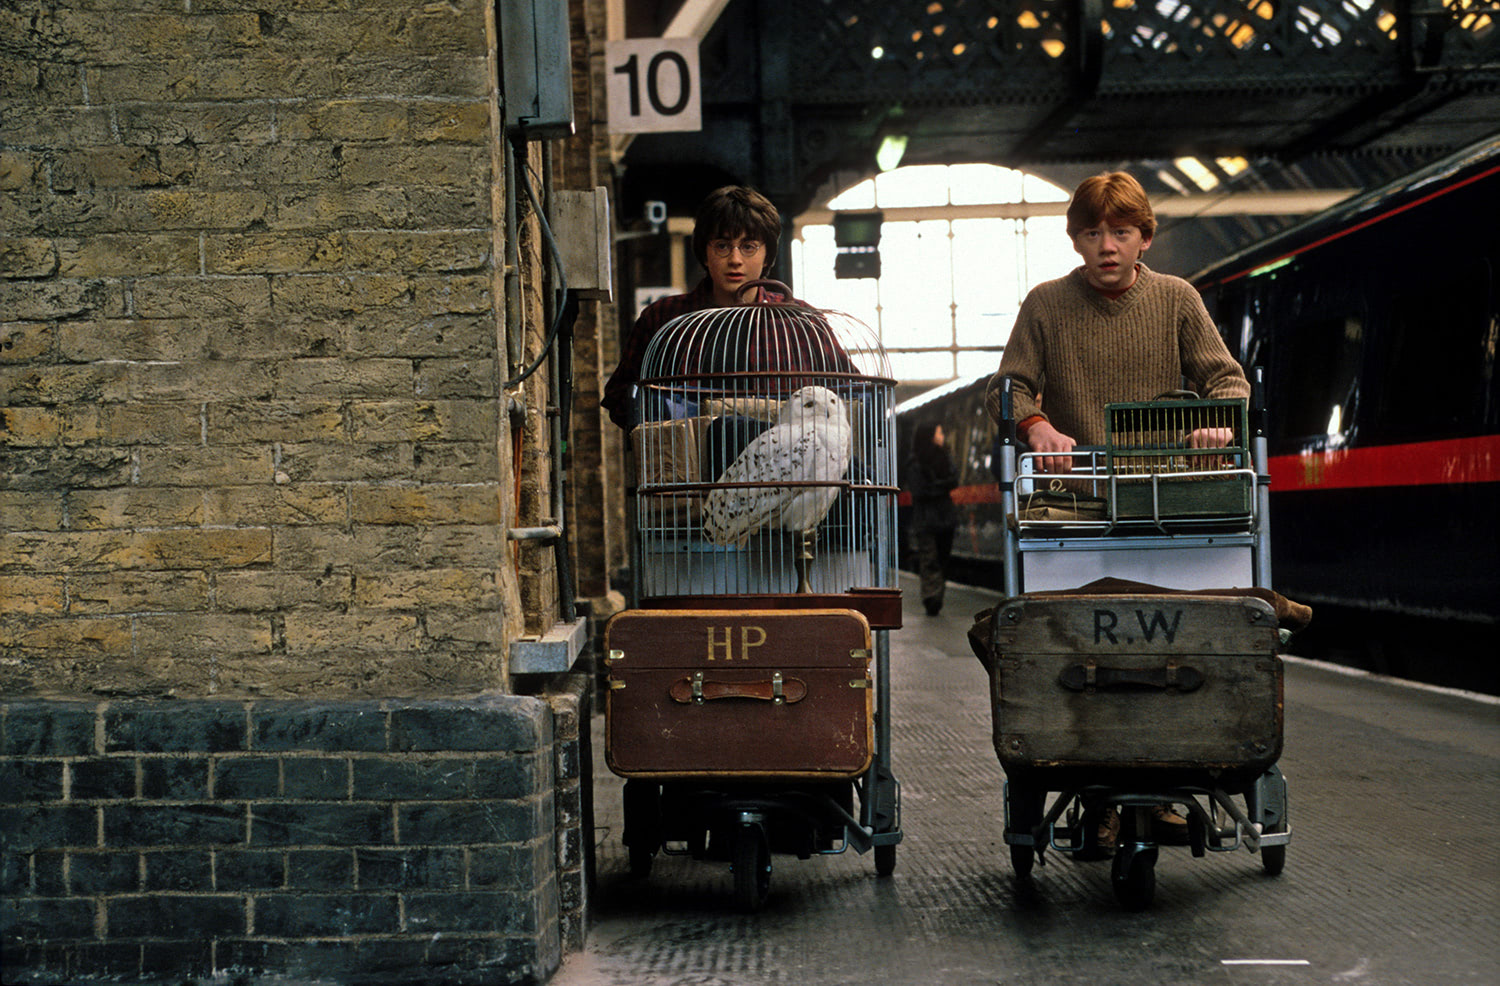 Harry and Ron at King's Cross Station